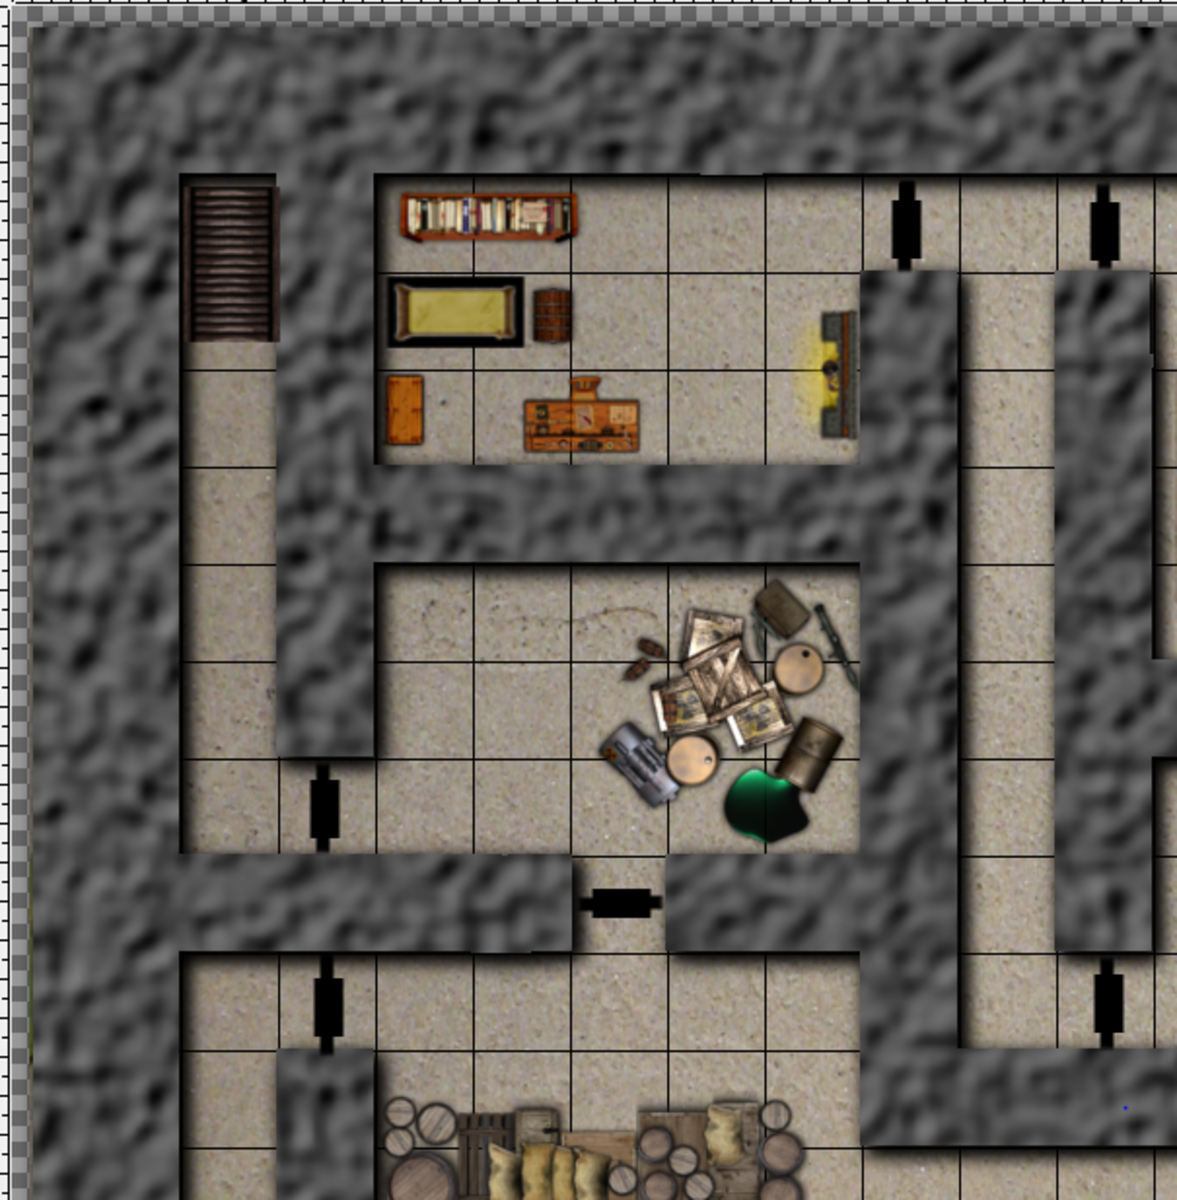 Creating a Fantasy Dungeon Map with GIMP 2.8 (2.10.12)